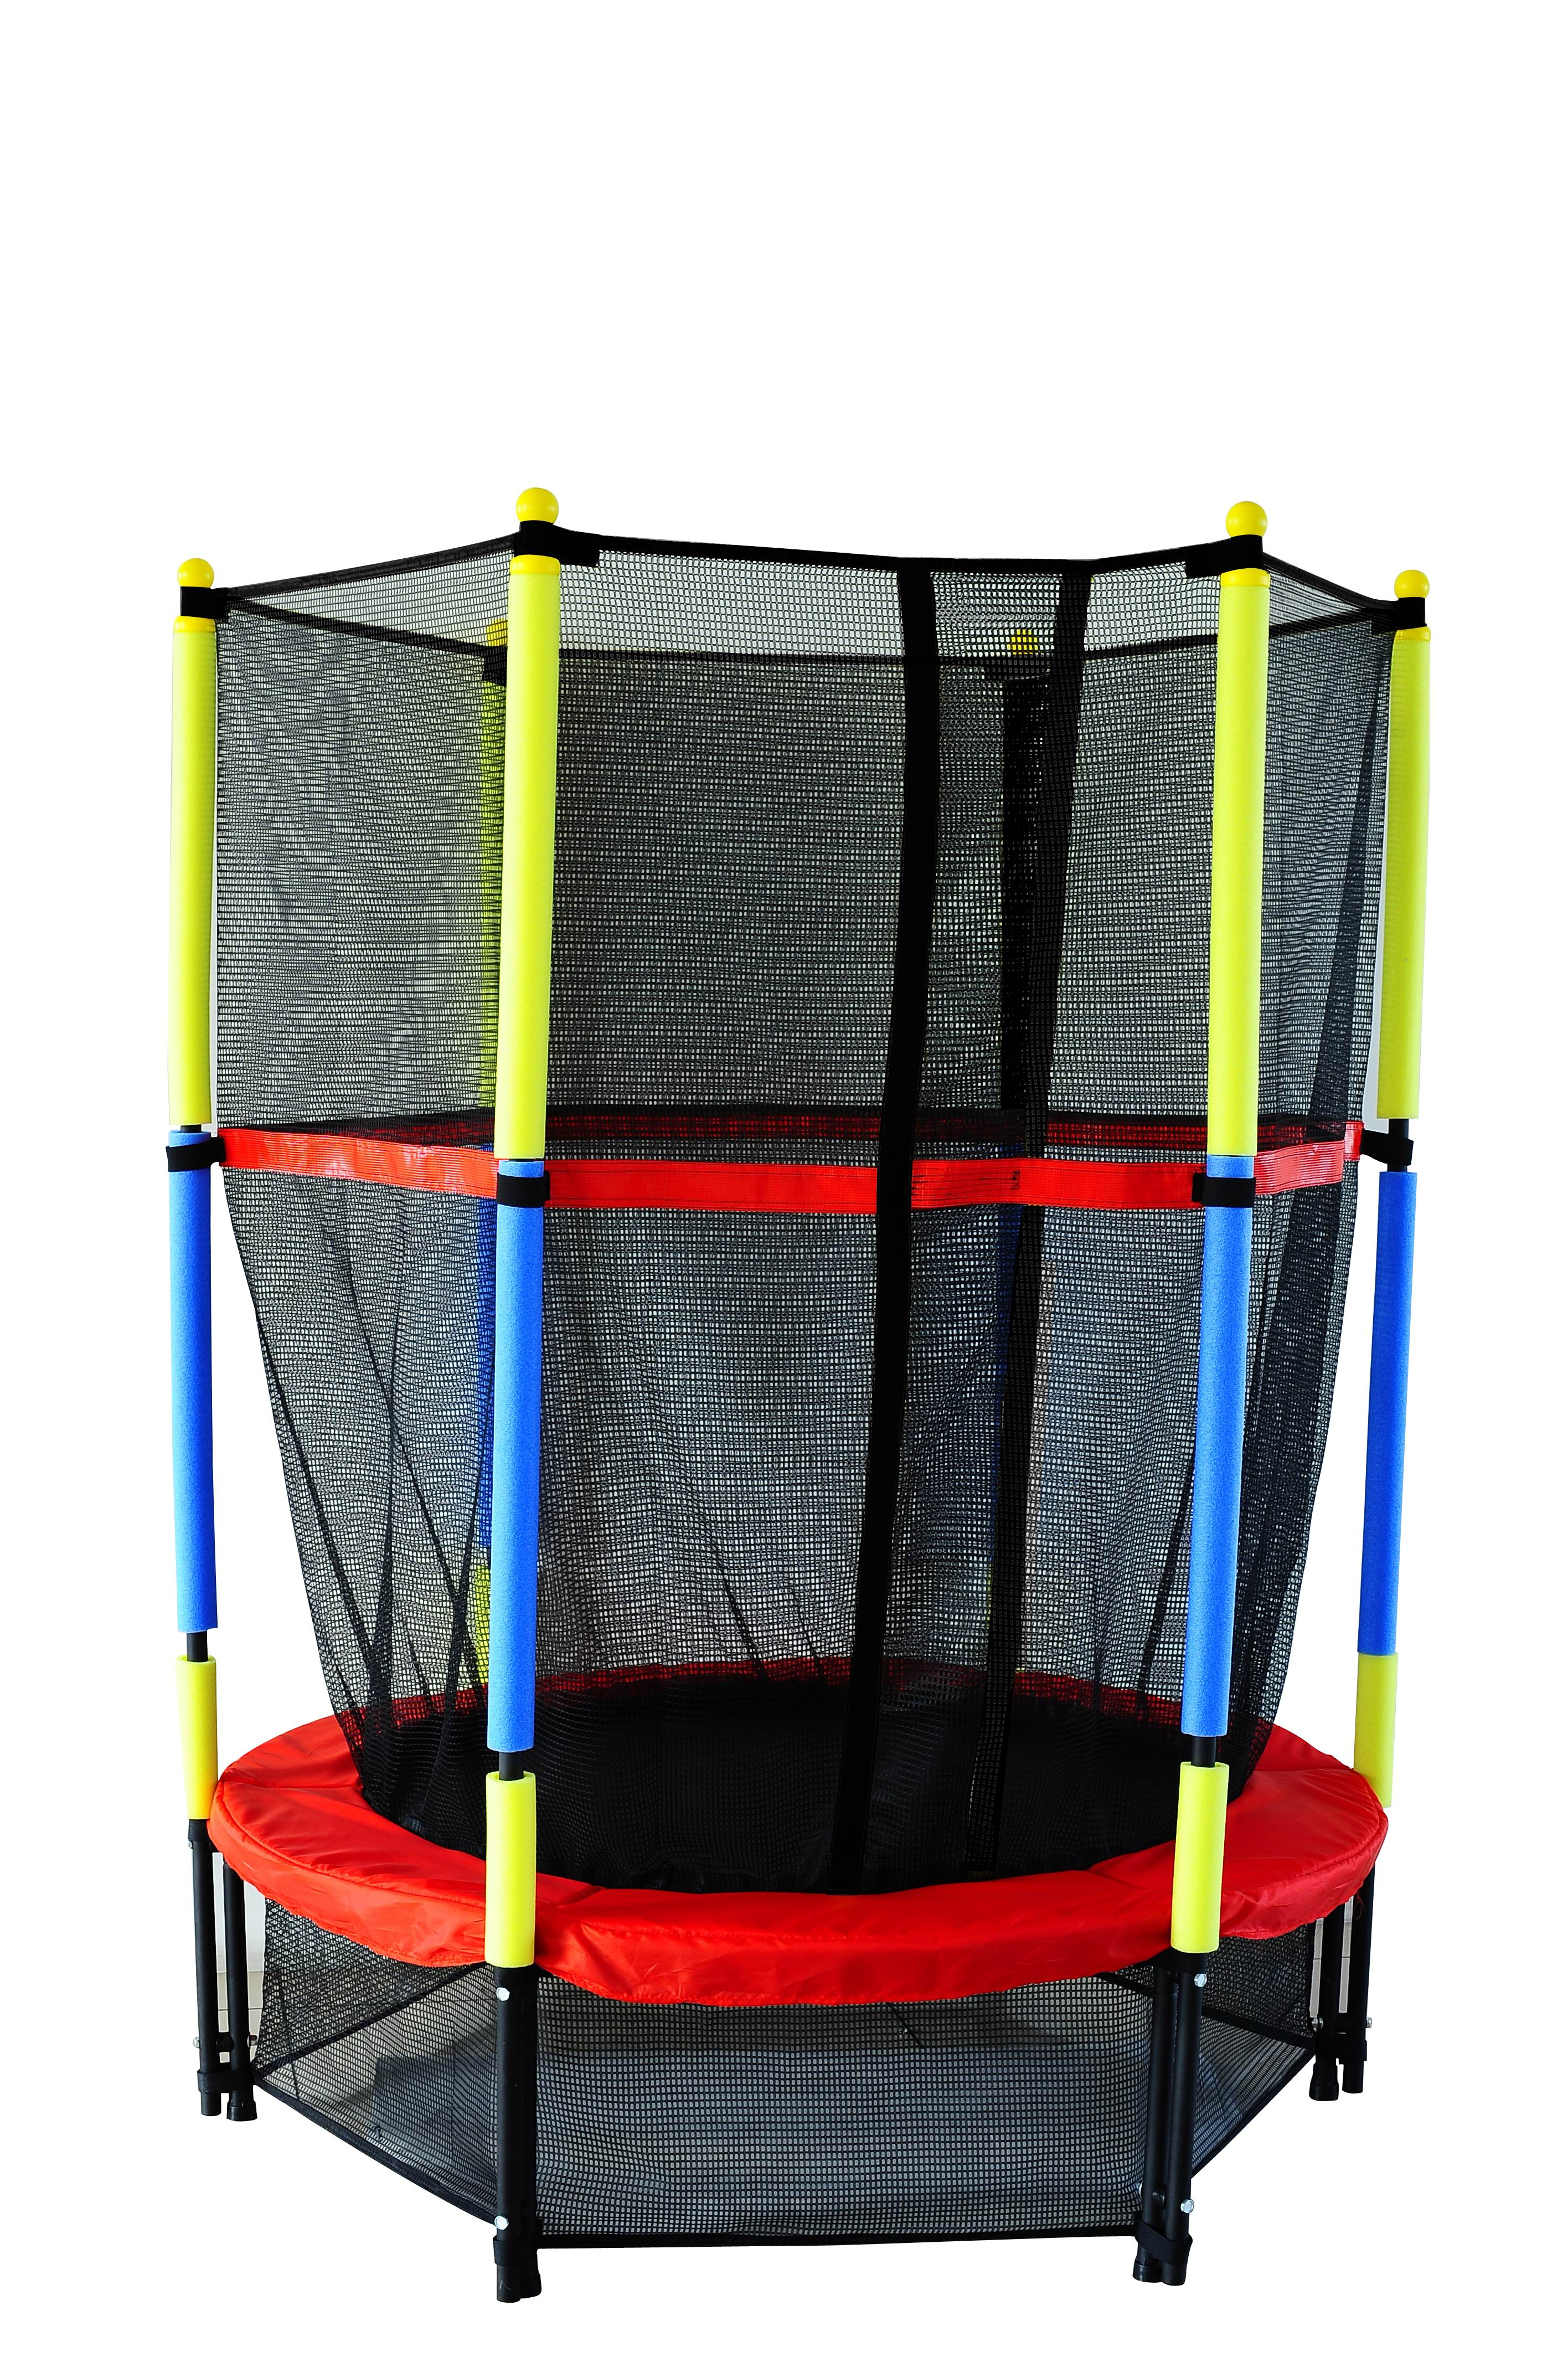 Sunny Health and Fitness Trampoline and Enclosure Mini Trampoline 0 0 Sunny Health and Fitness Trampoline and Enclosure